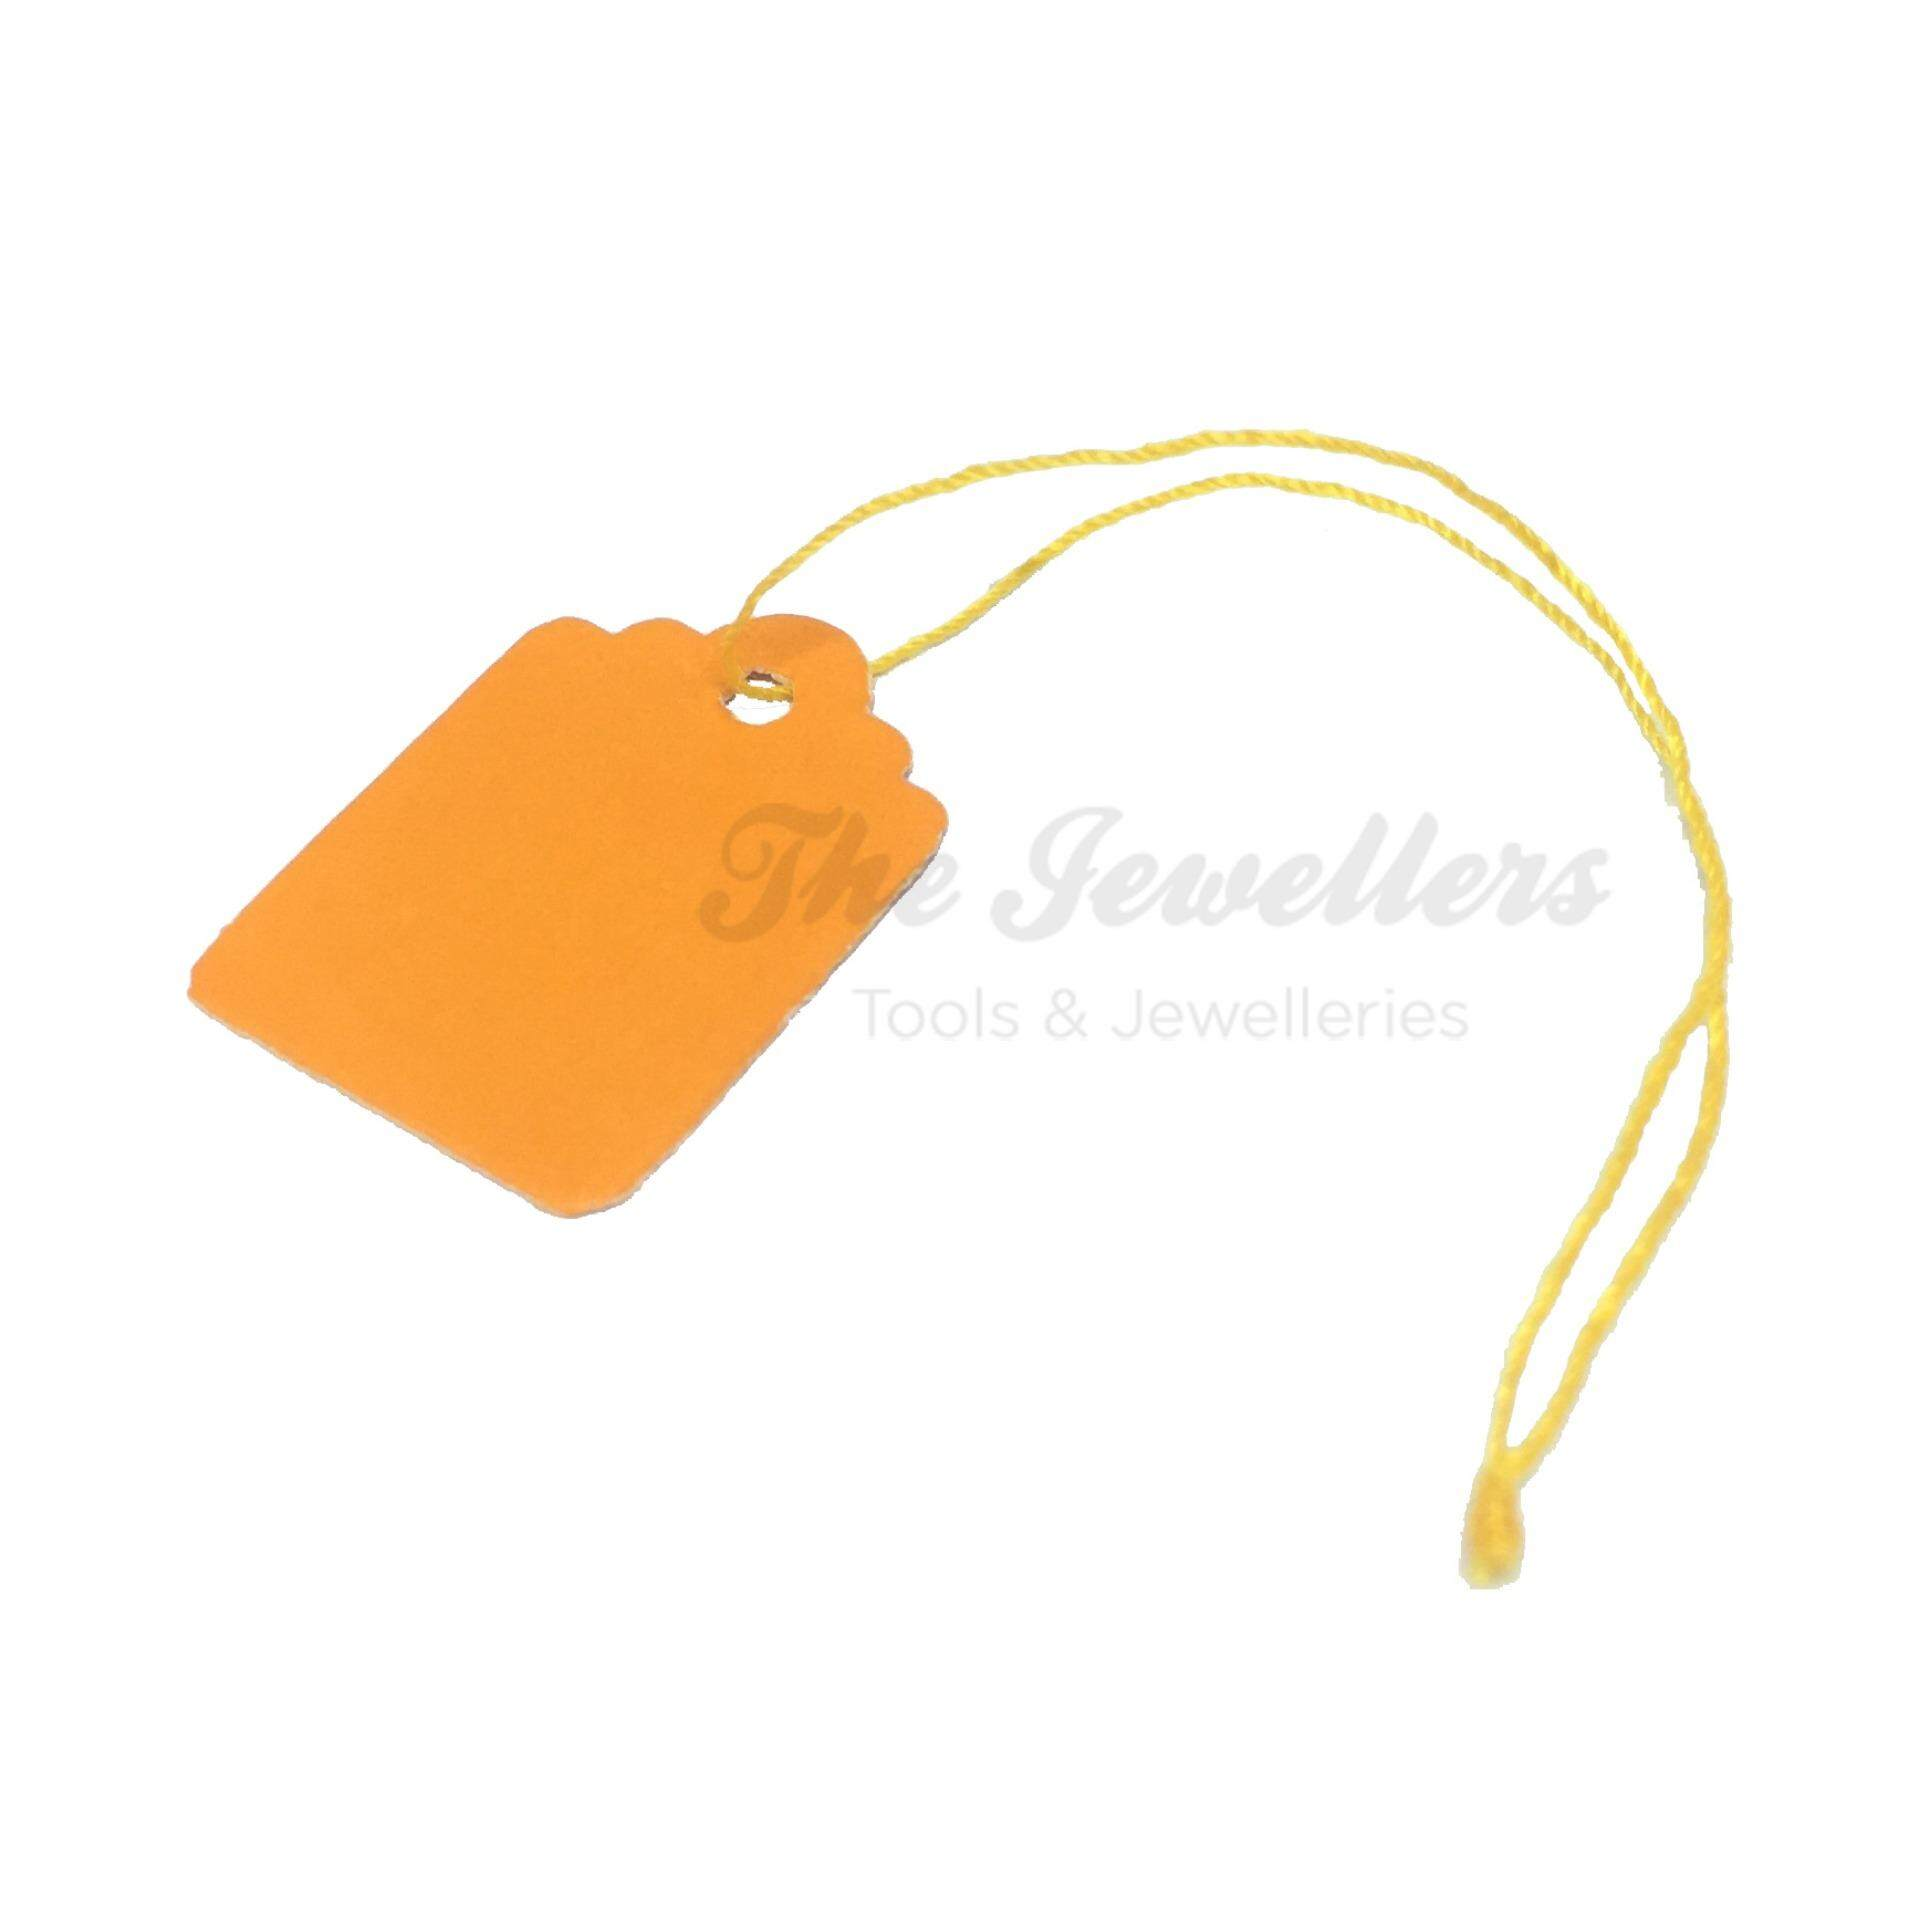 450+-pcs Rectangular Shape Orange Colour Jewellery Price Tag with Thick Yellow Thread